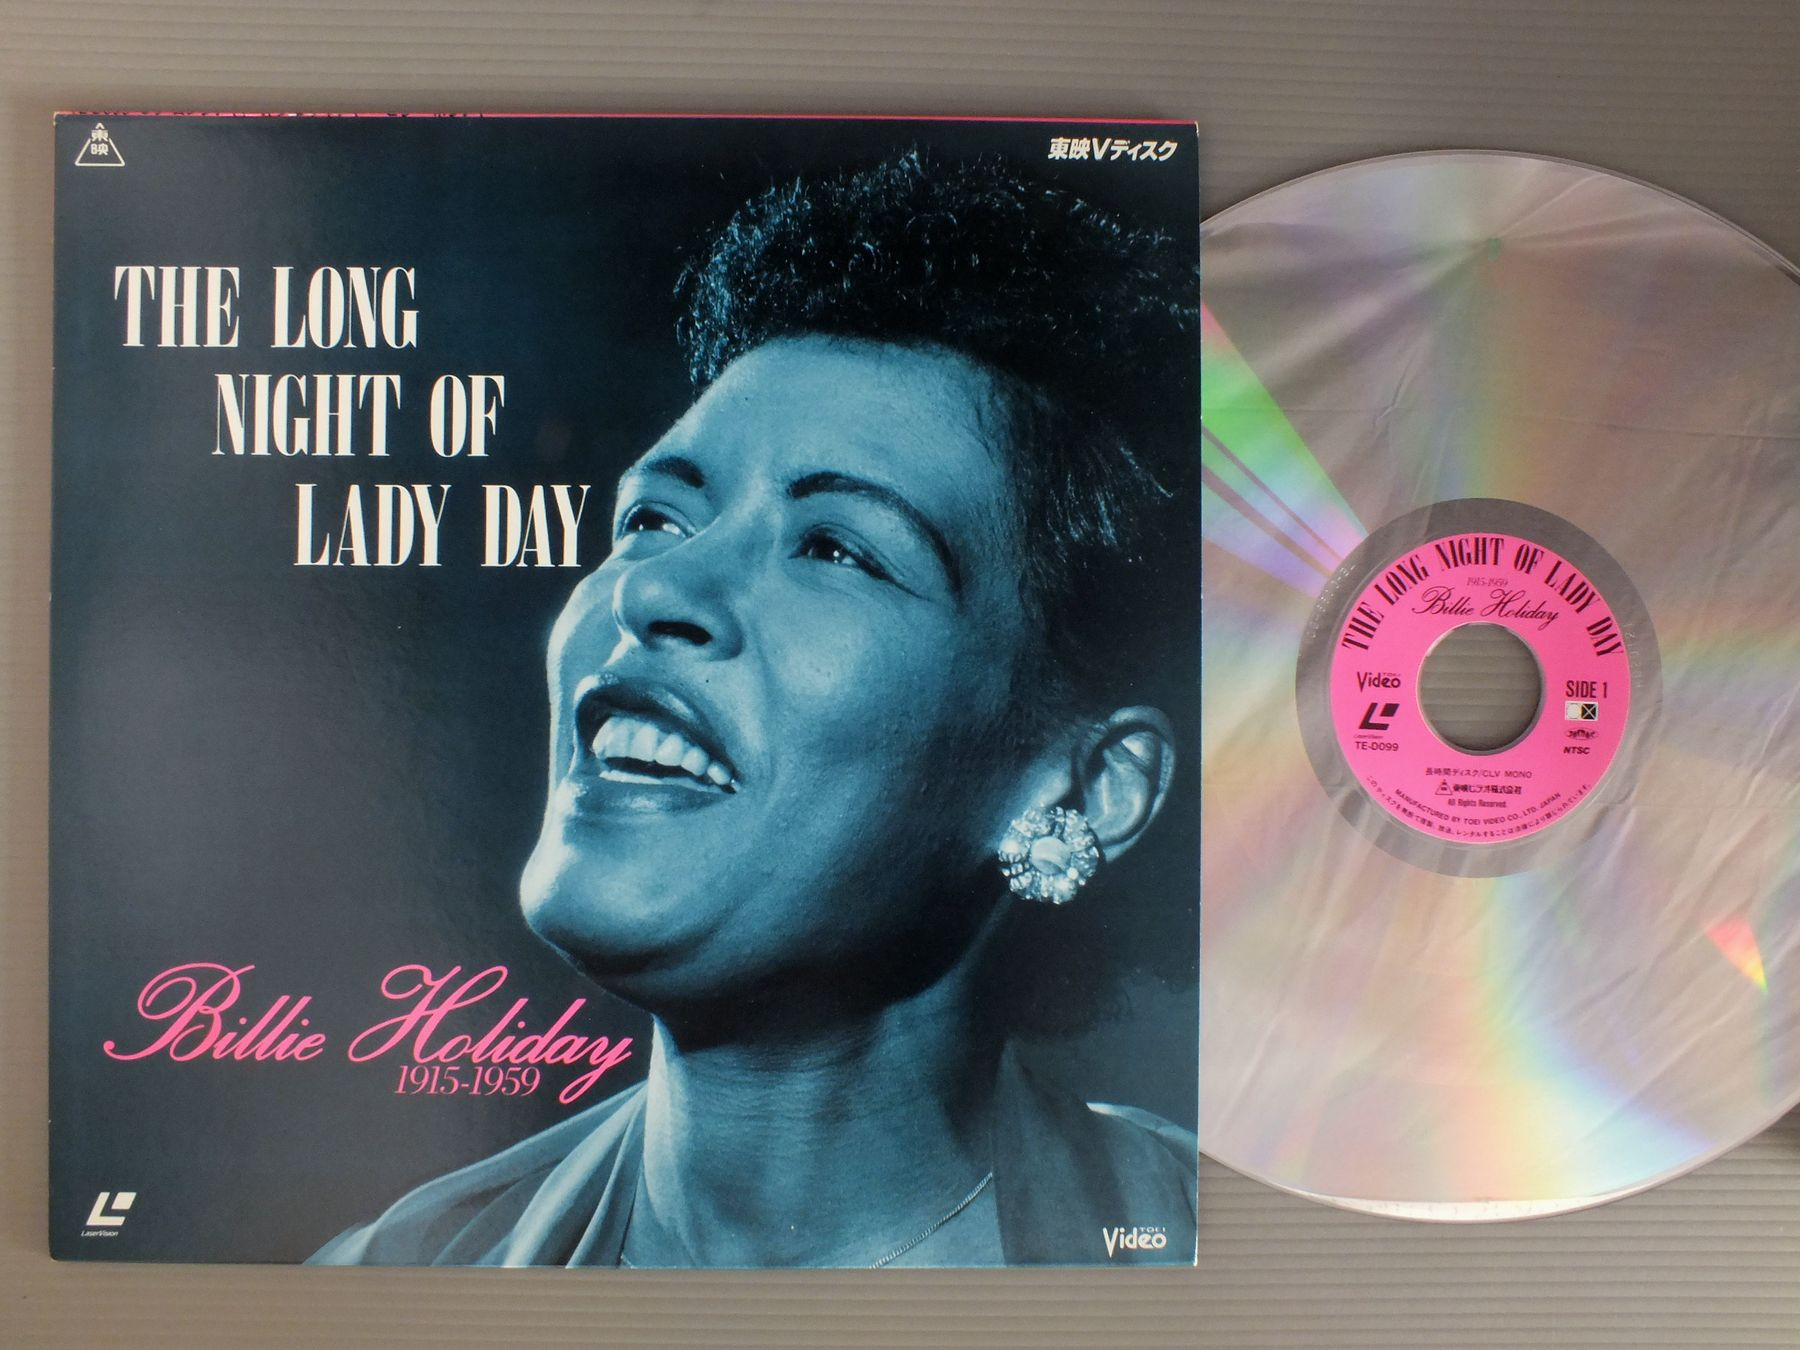 BILLIE HOLIDAY - LONG NIGHT OF LADY DAY - Laser Disc